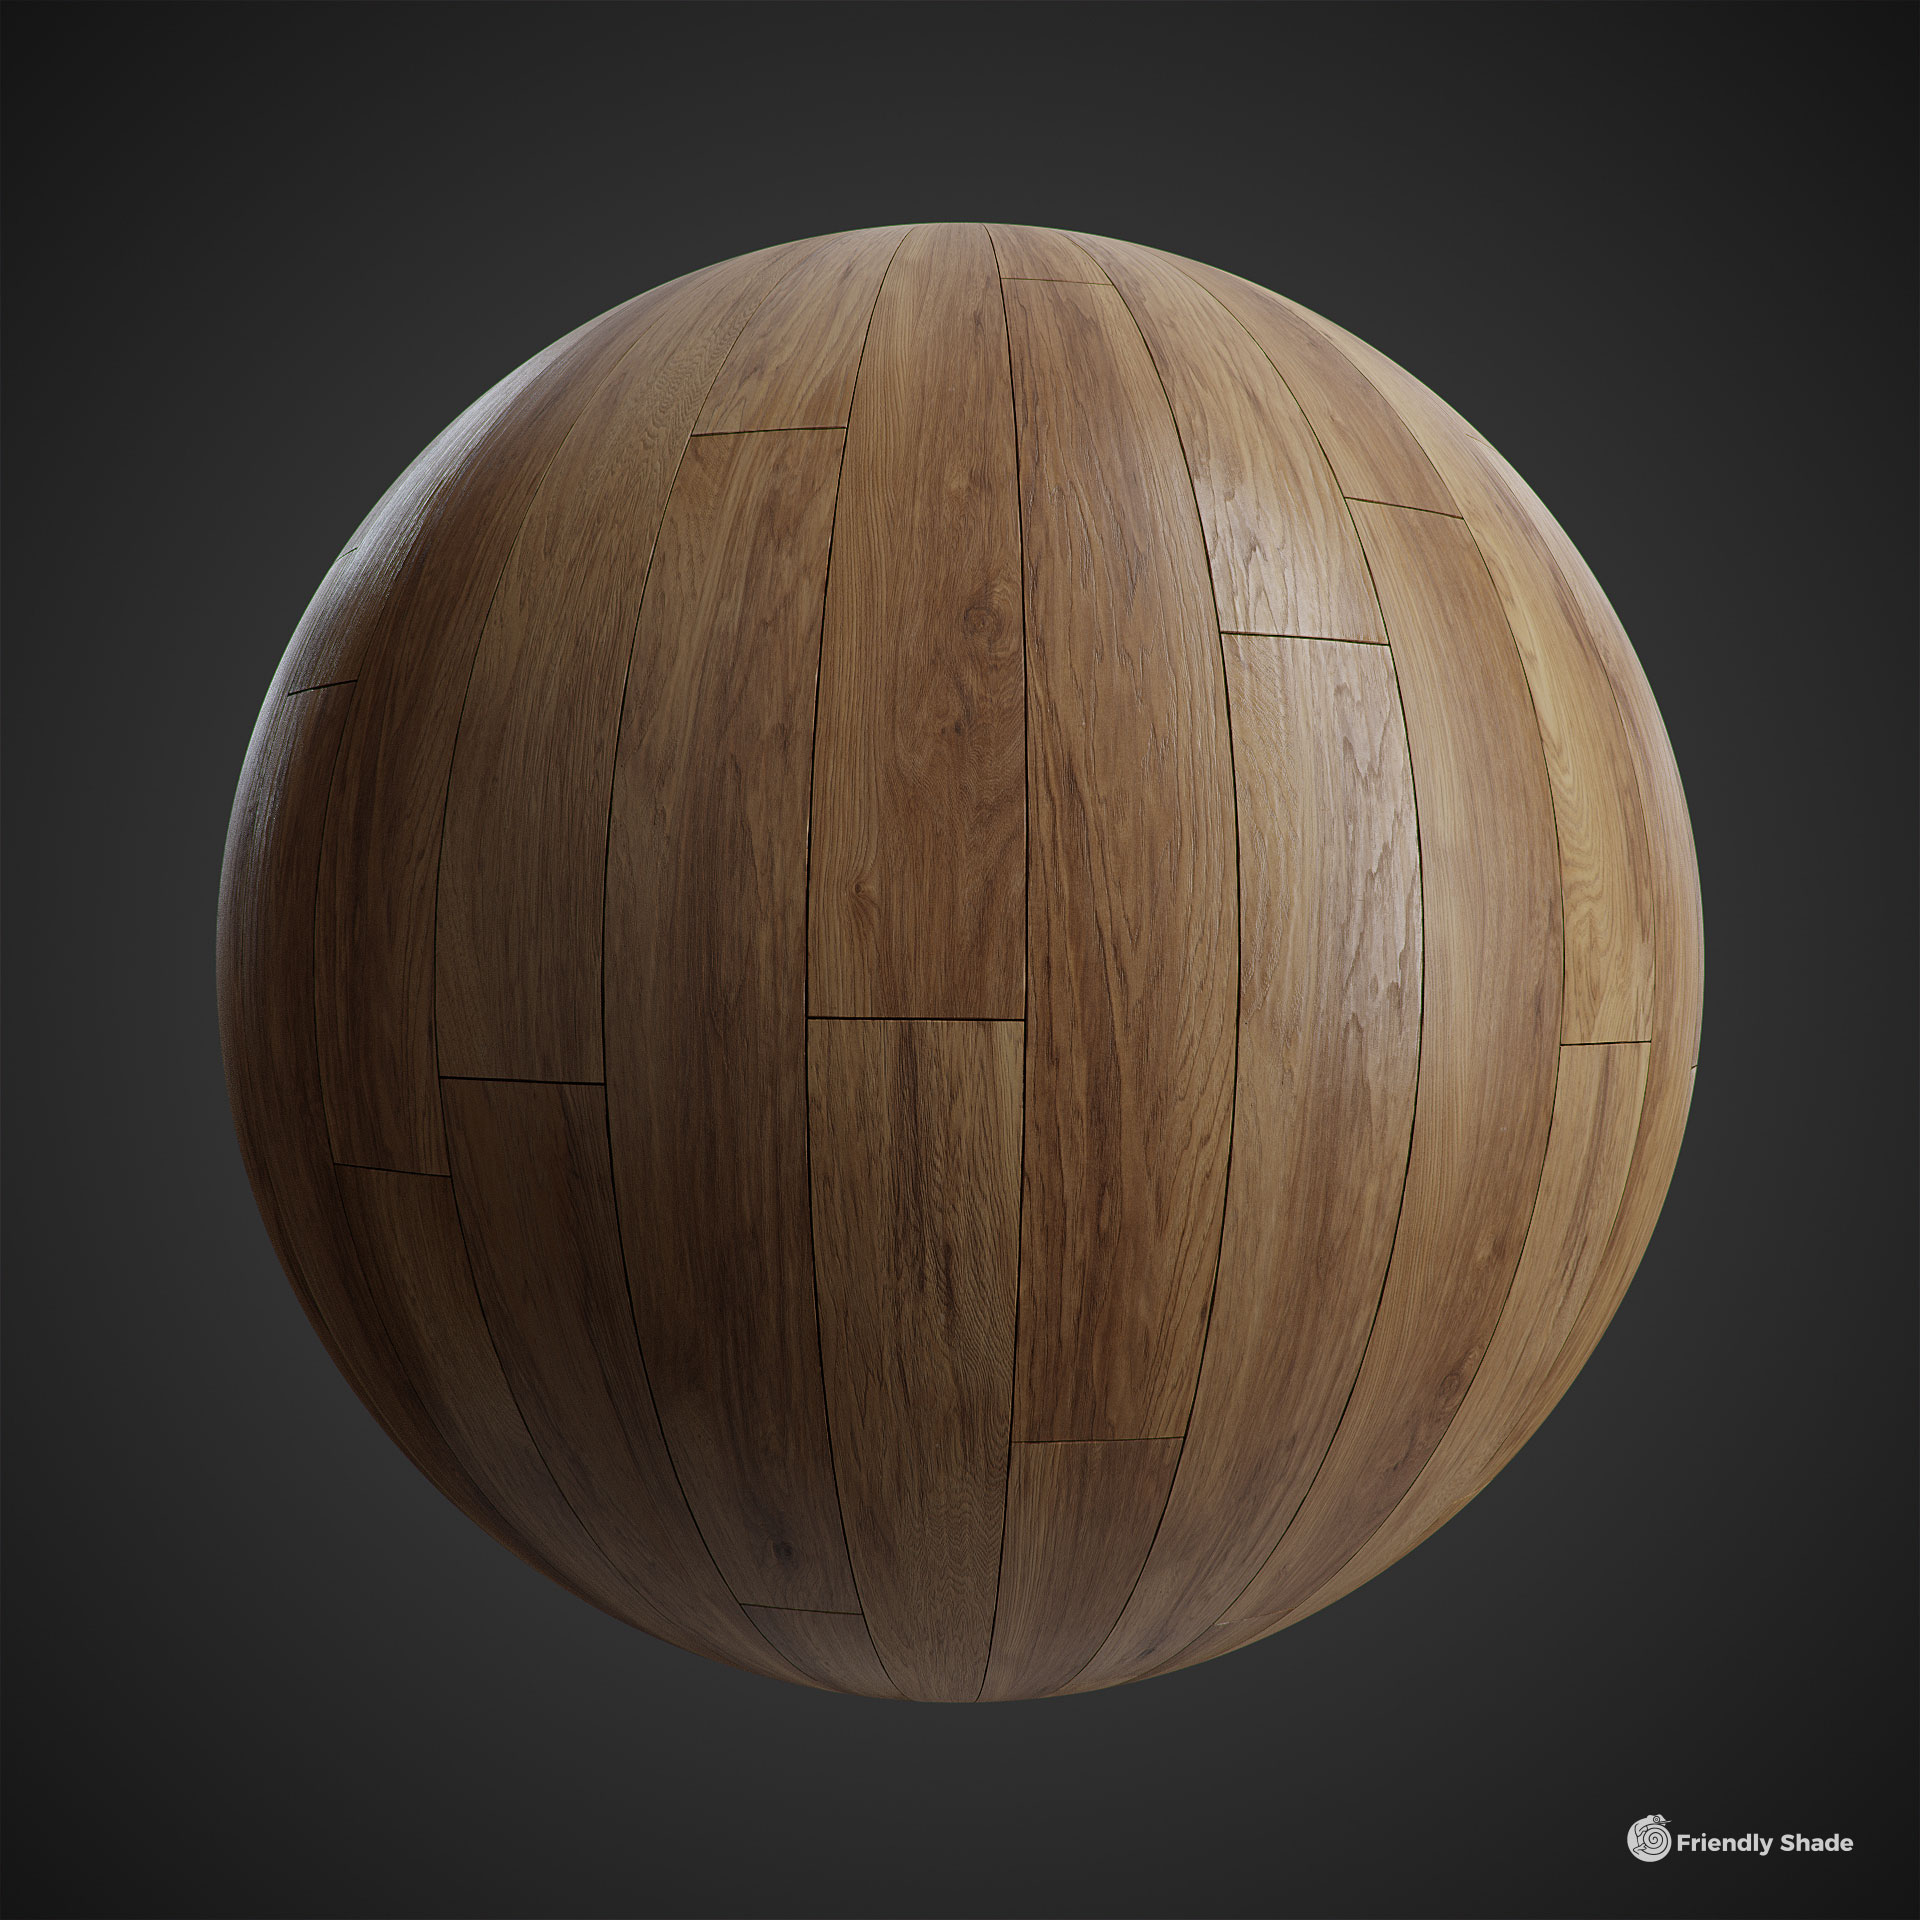 The image shows a sphere with our Fine Wood Planks texture